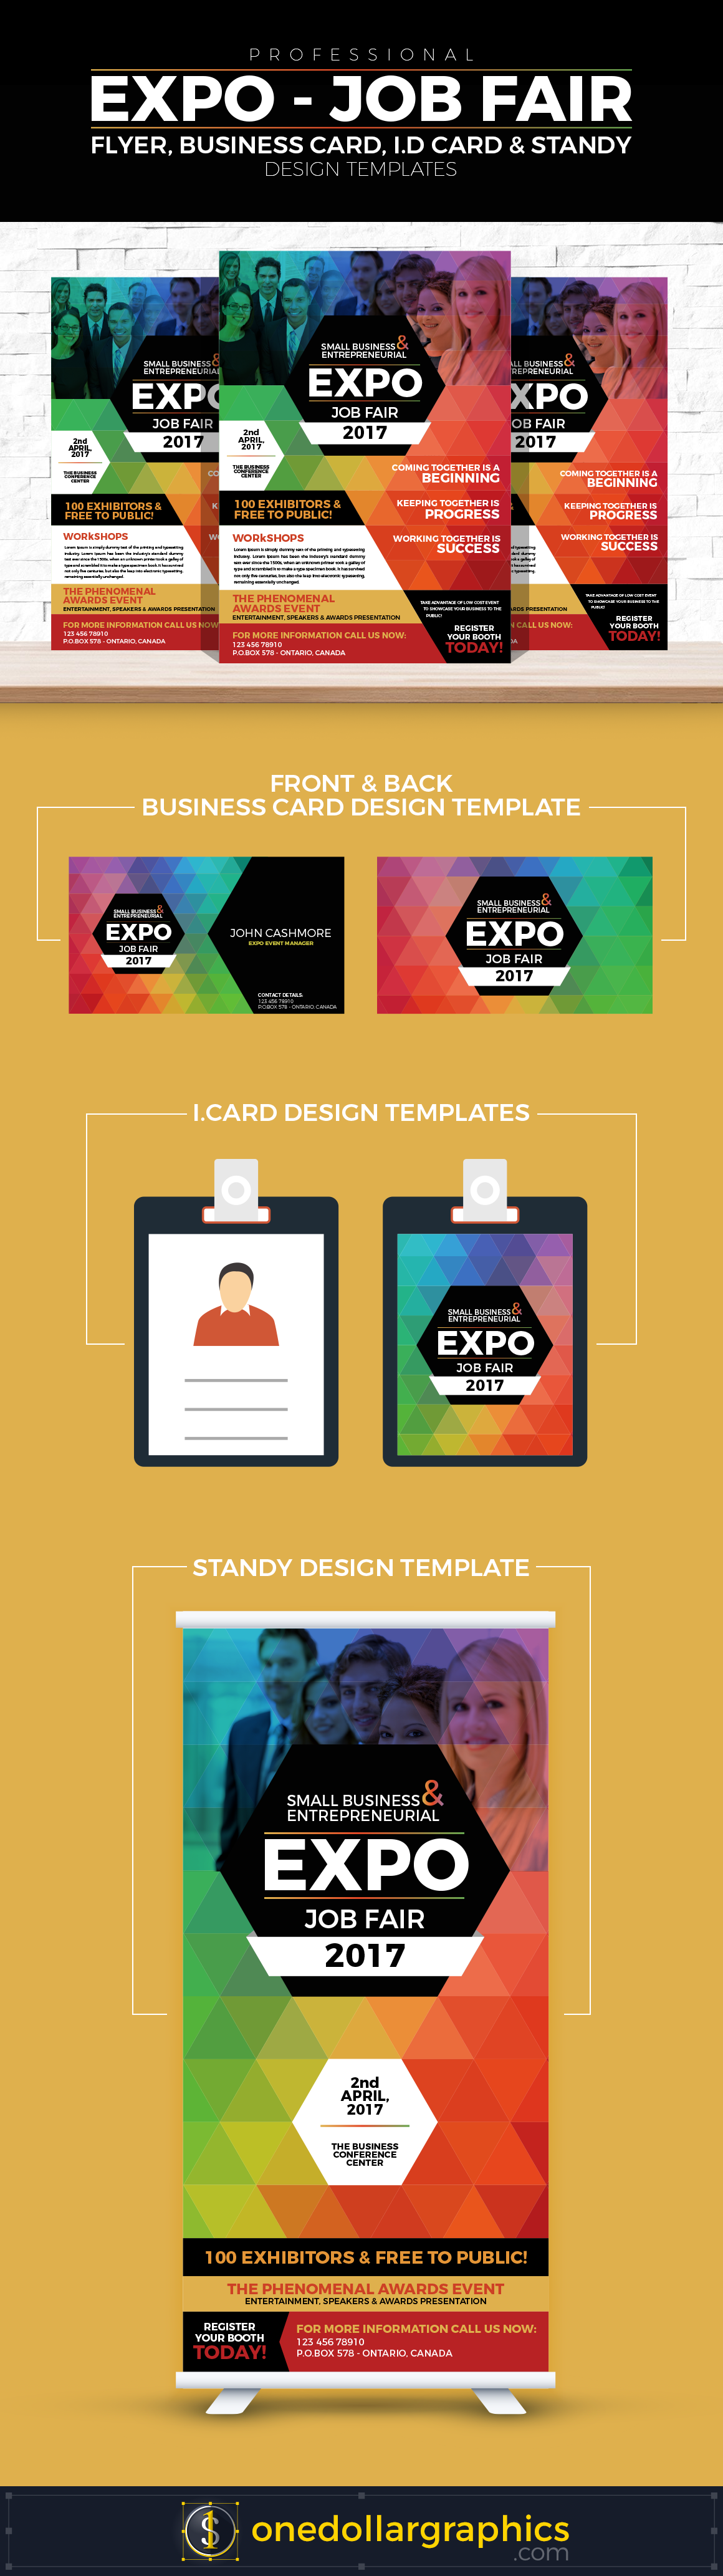 Professional-Job-Expo-Job-Fair-Flyer,-Business-Card,-I.D-Card-&-Standy-Design-Templates